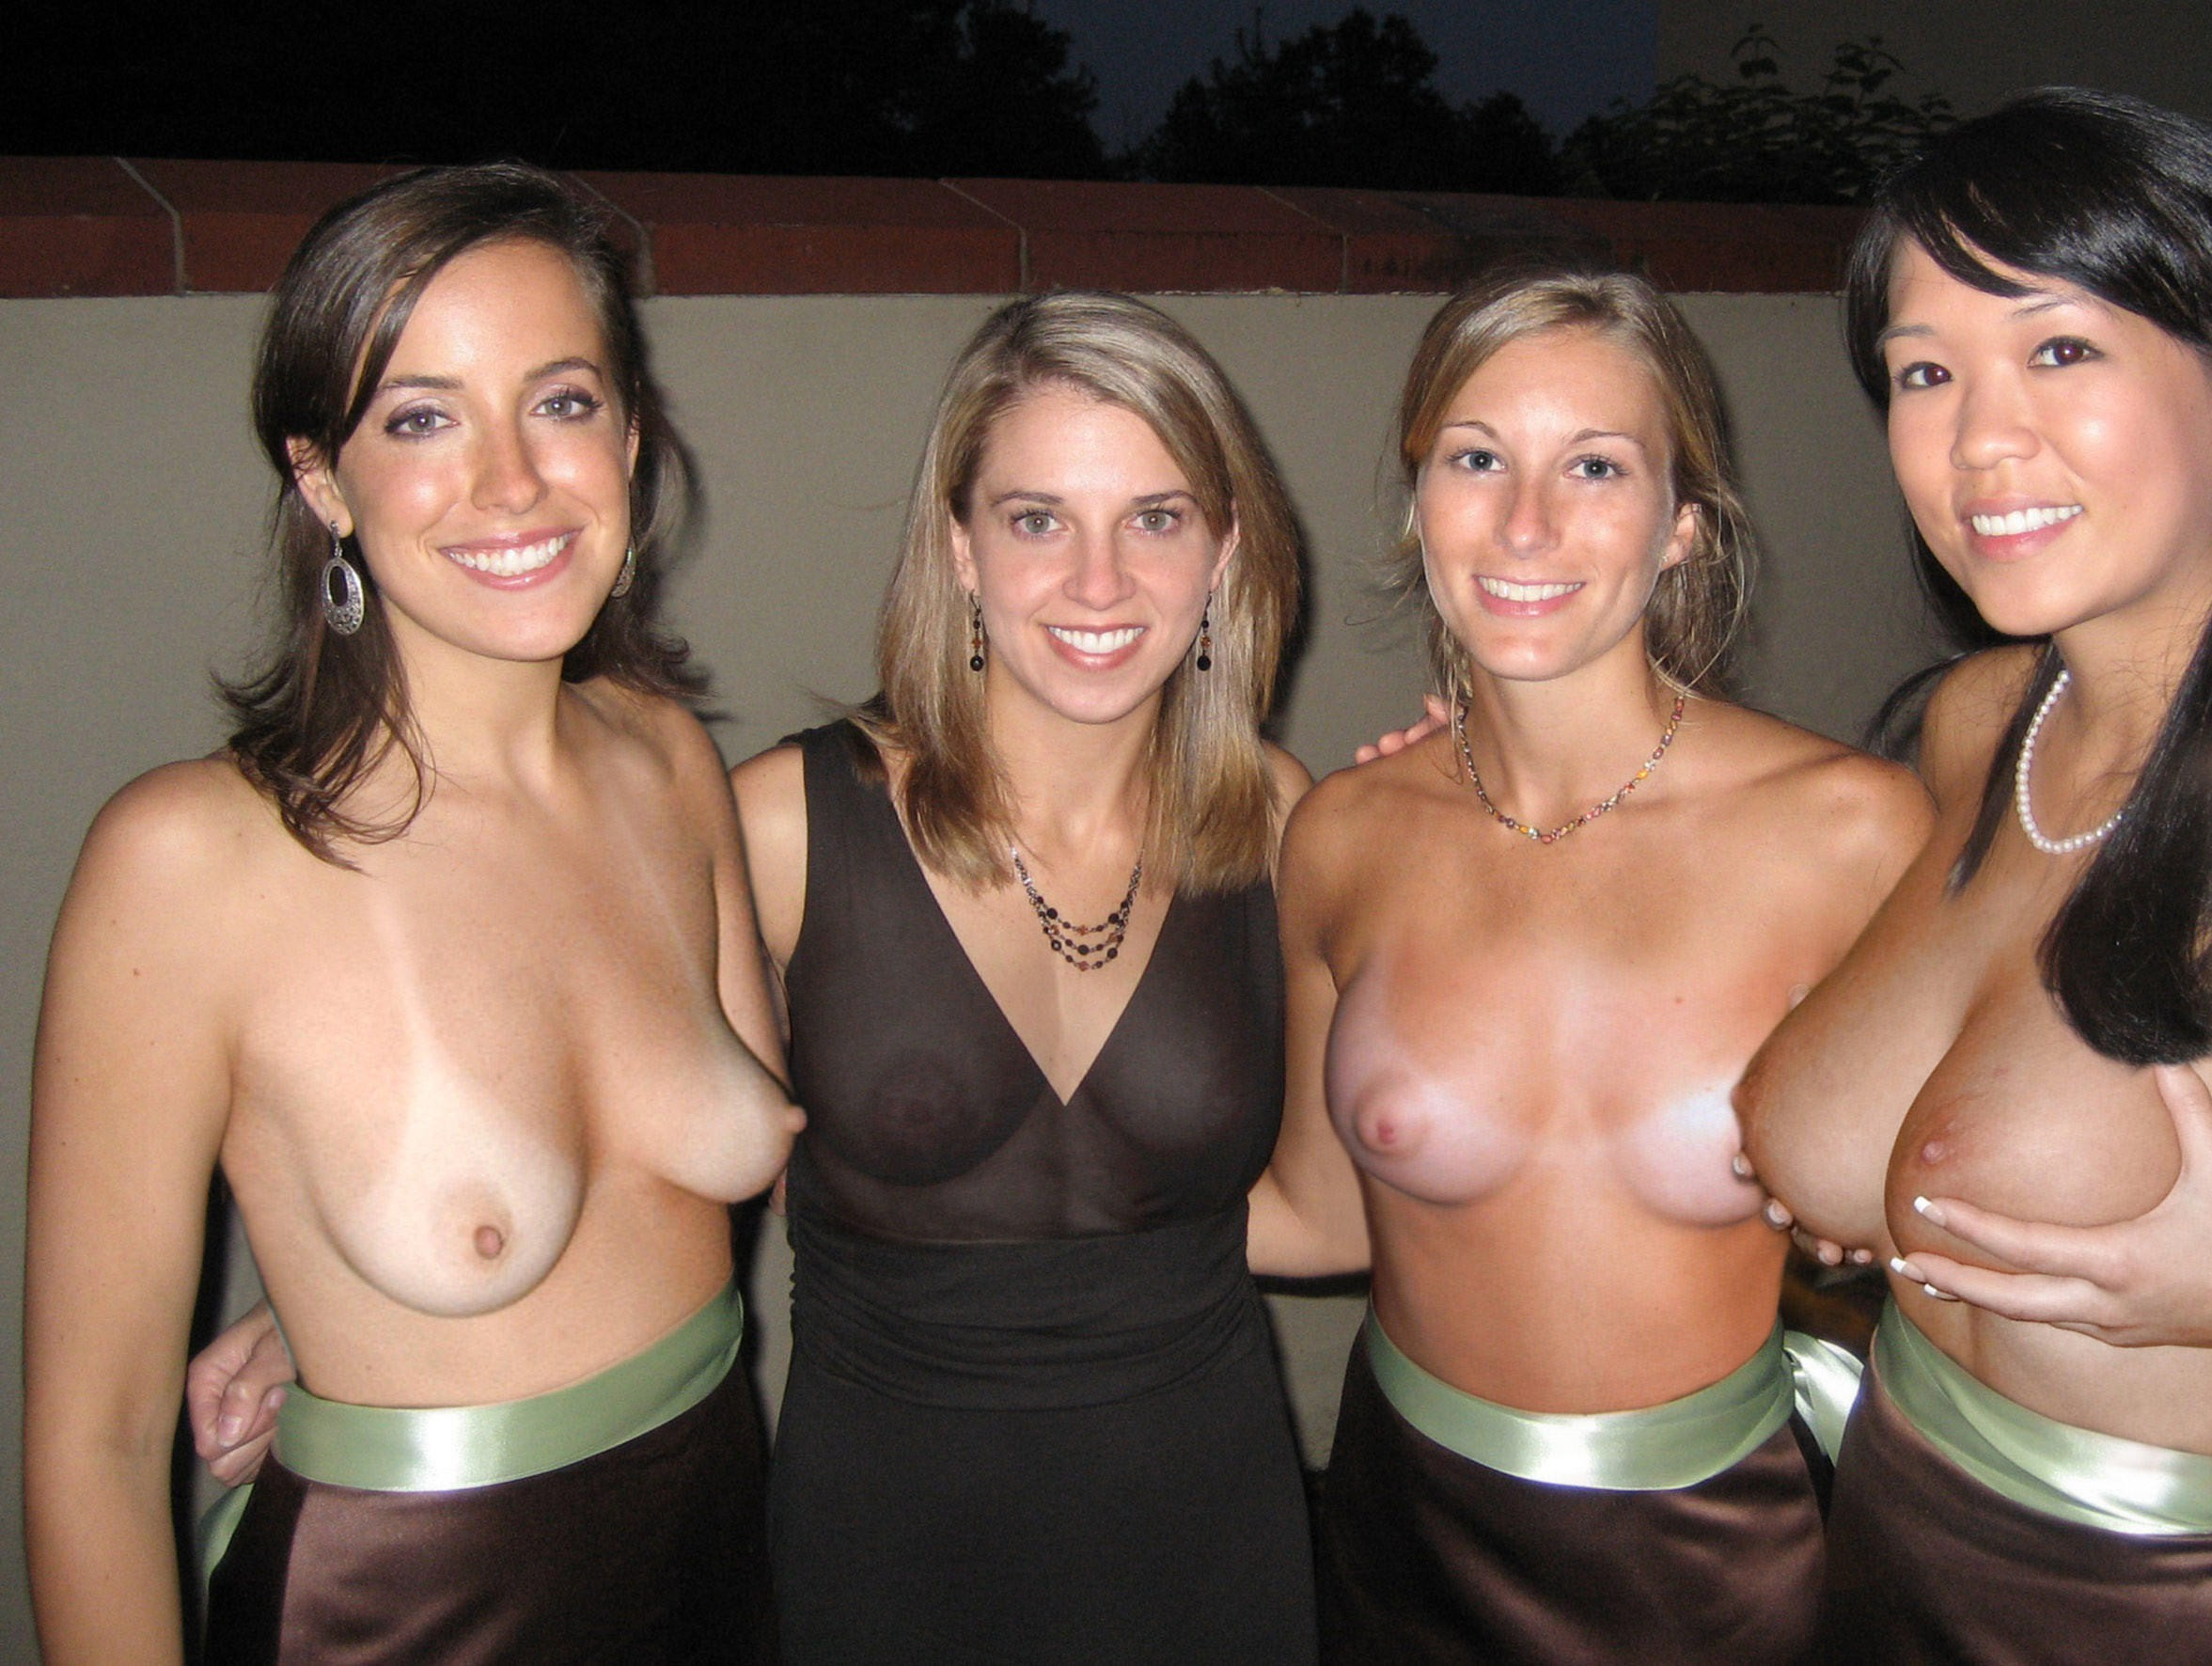 Single hot ladies nude in party pity